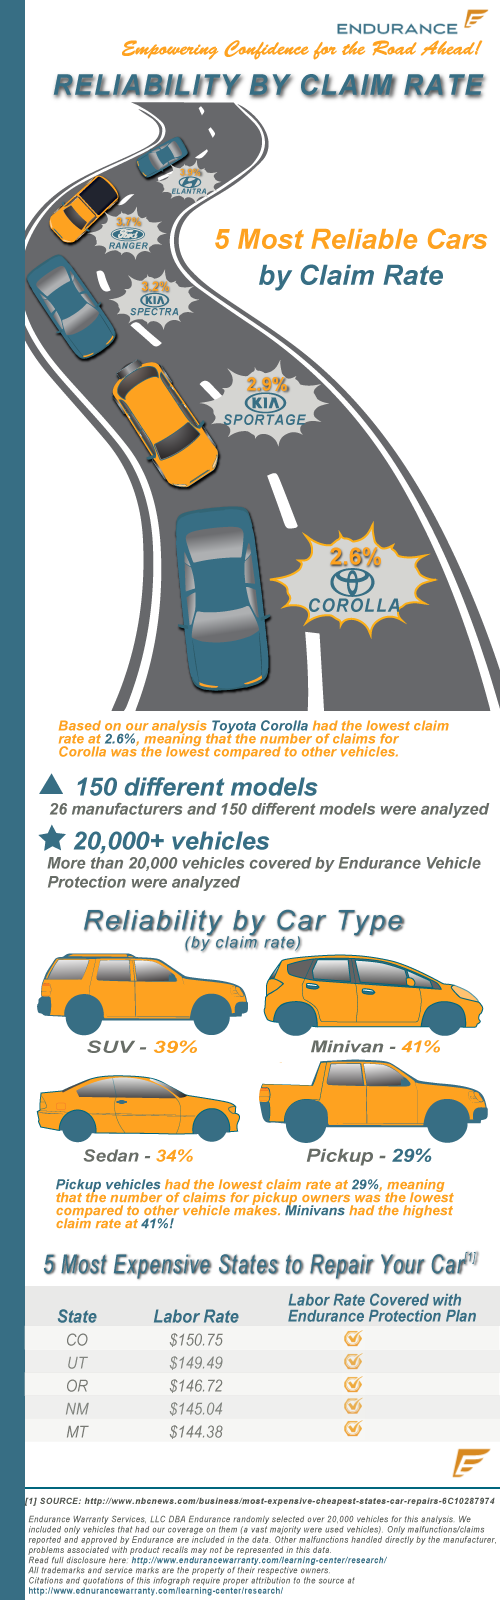 Infographic: Top 5 Most Reliable Cars by Claim Rate